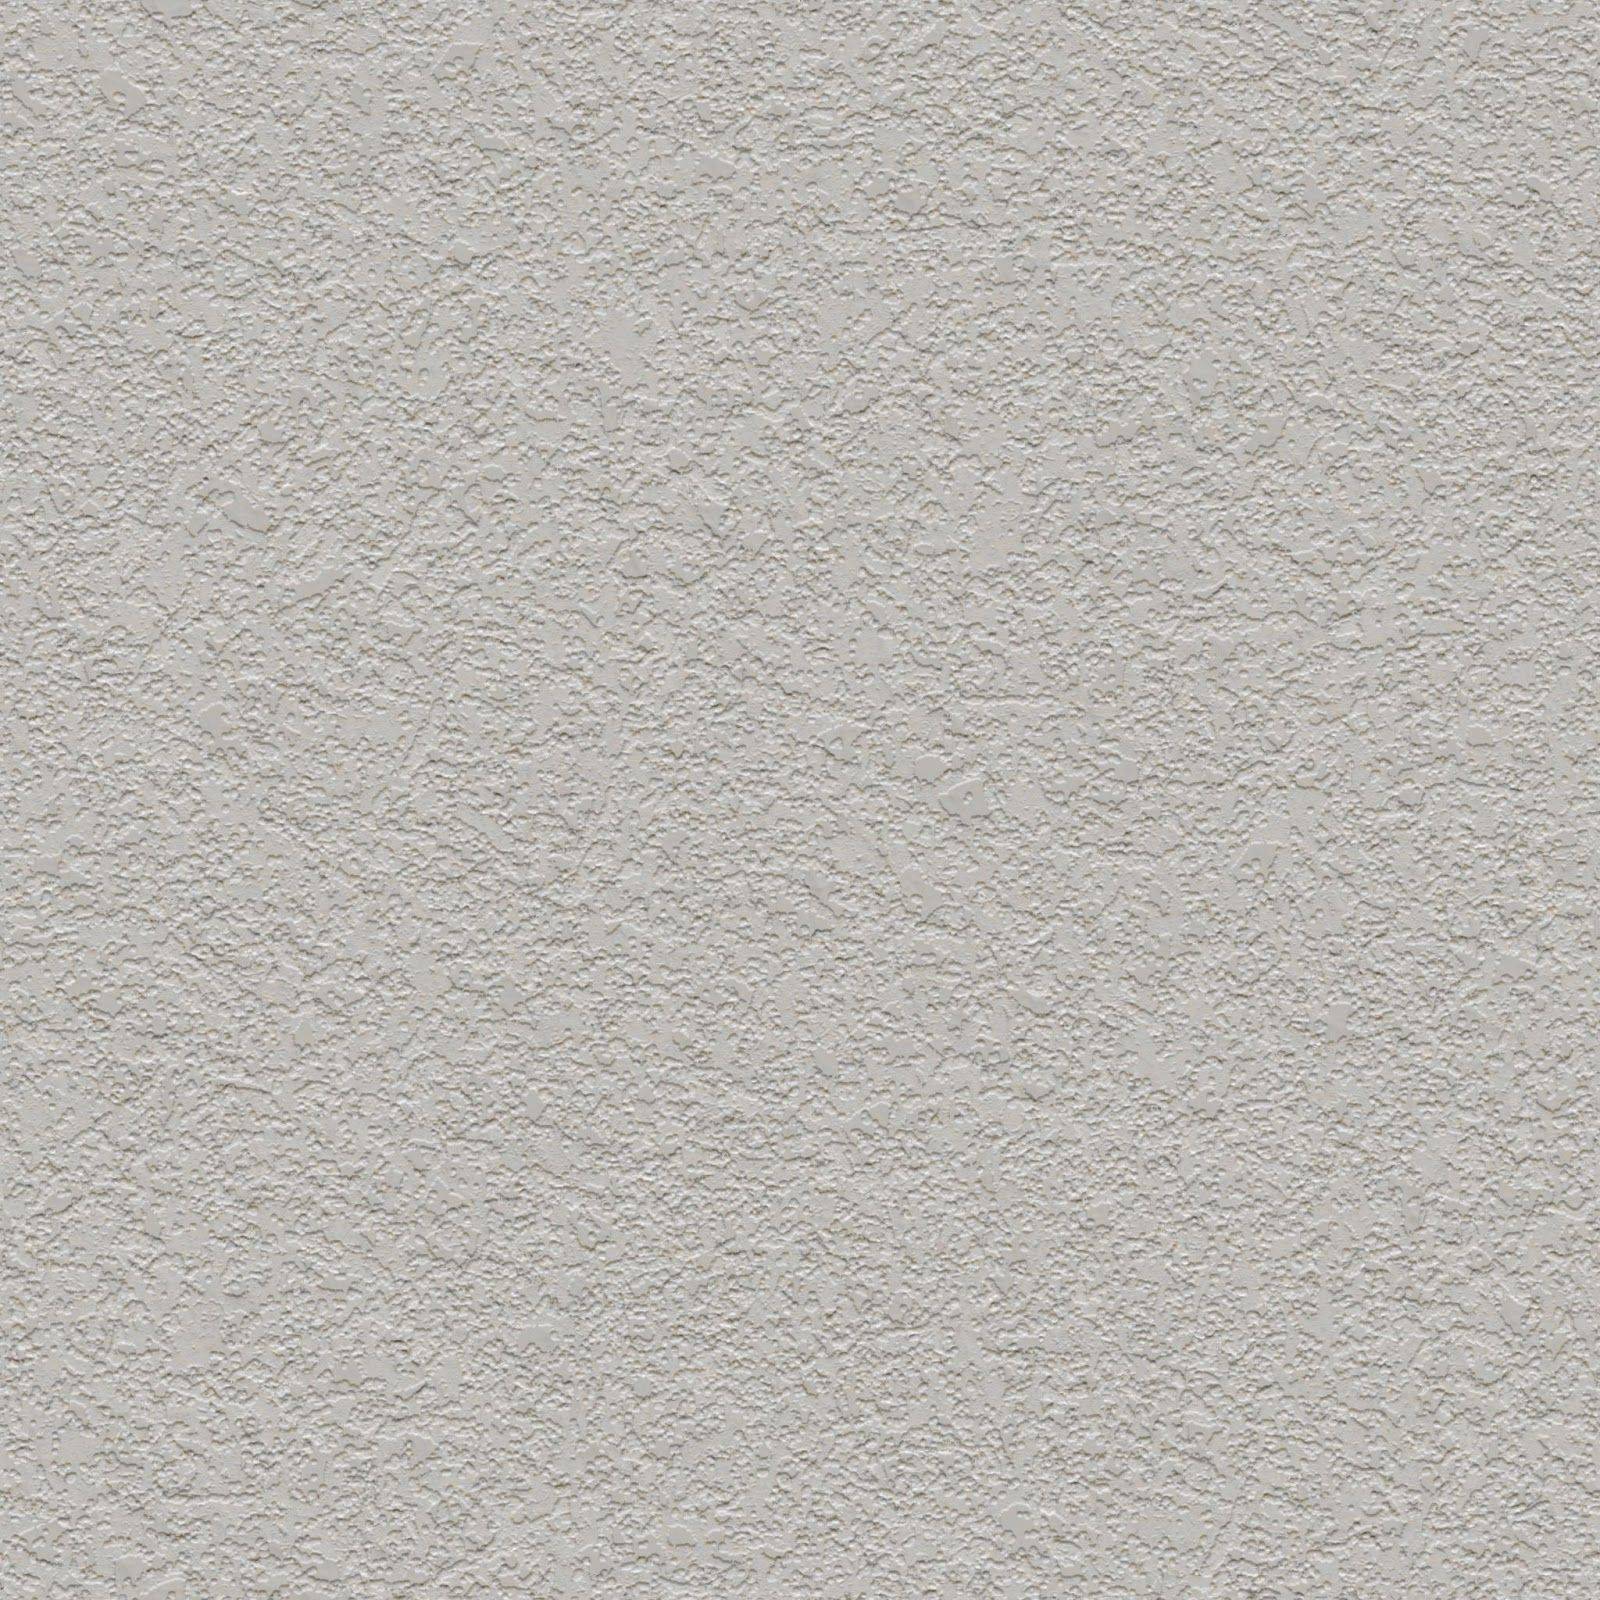 Wall paint texture seamless - Smooth_stucco_white_paint_streaky_plaster_fine_detail_wall_texture_seamless_tileable_april12 Ceiling Texturestucco Wallsseamless